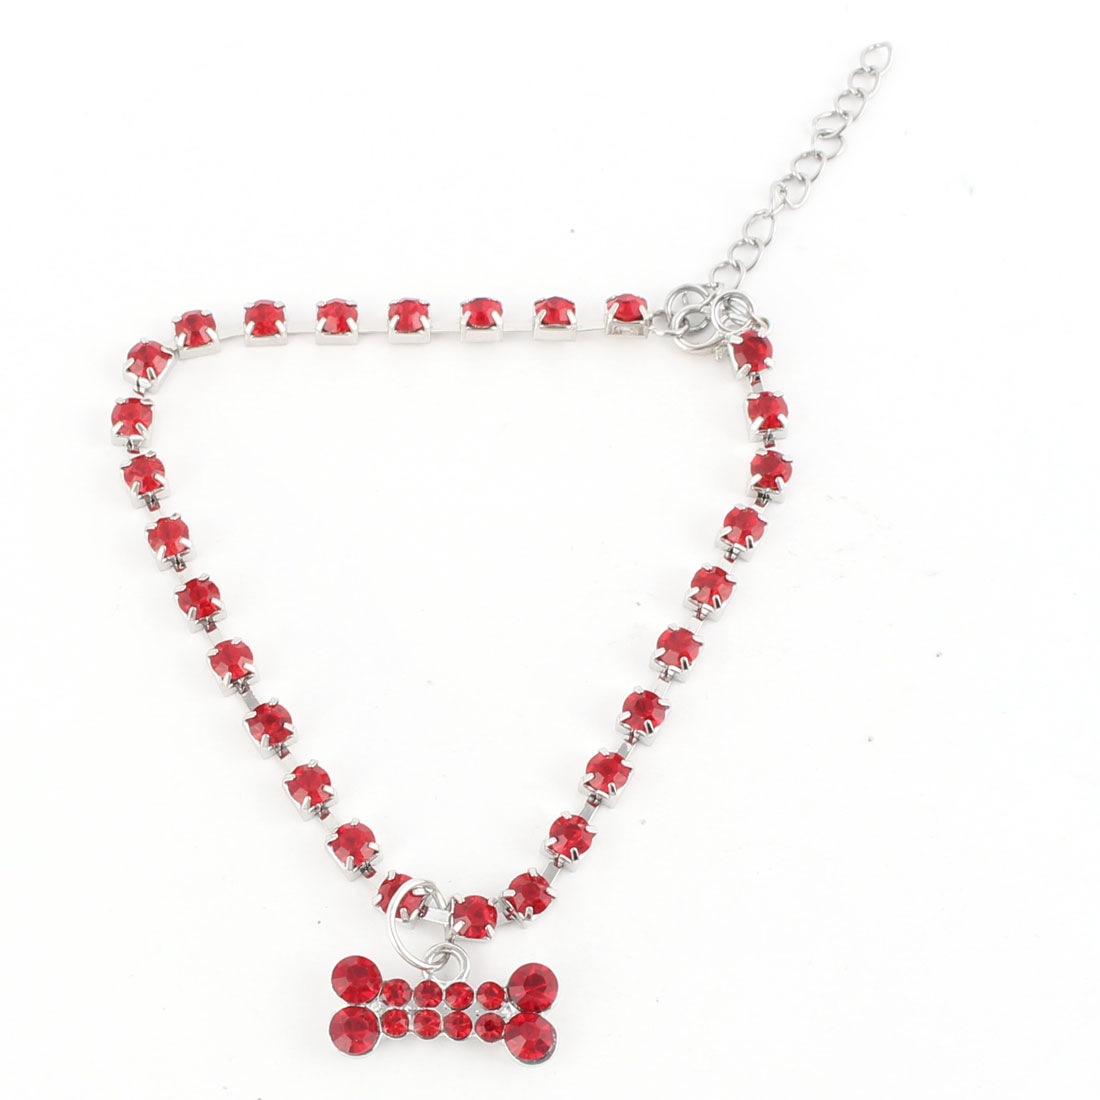 Pet Dog Bone Pattern Pendant Rhinestone Inlaid Decorative Necklace Neck Chain Red